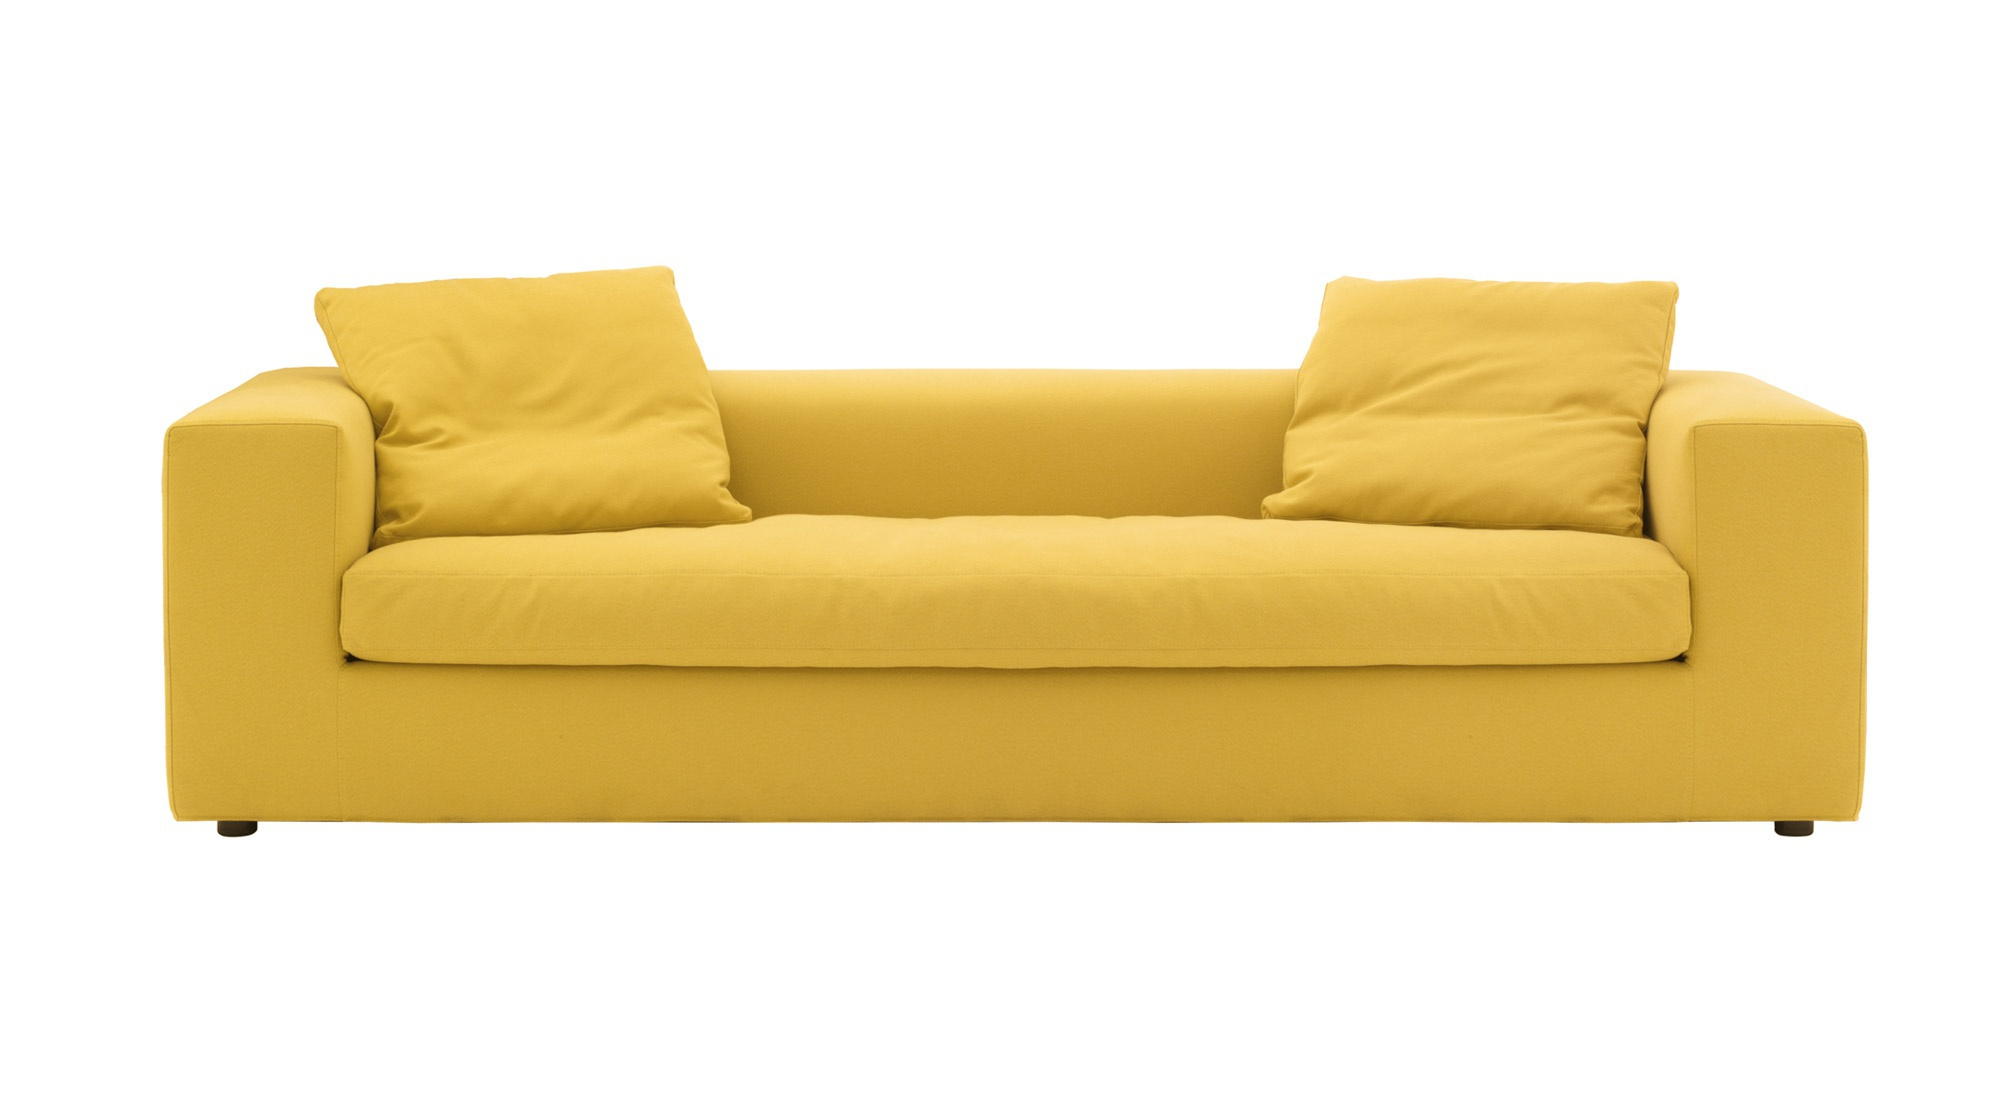 Double Sofa Camp Cappellini Luxury Furniture Mr